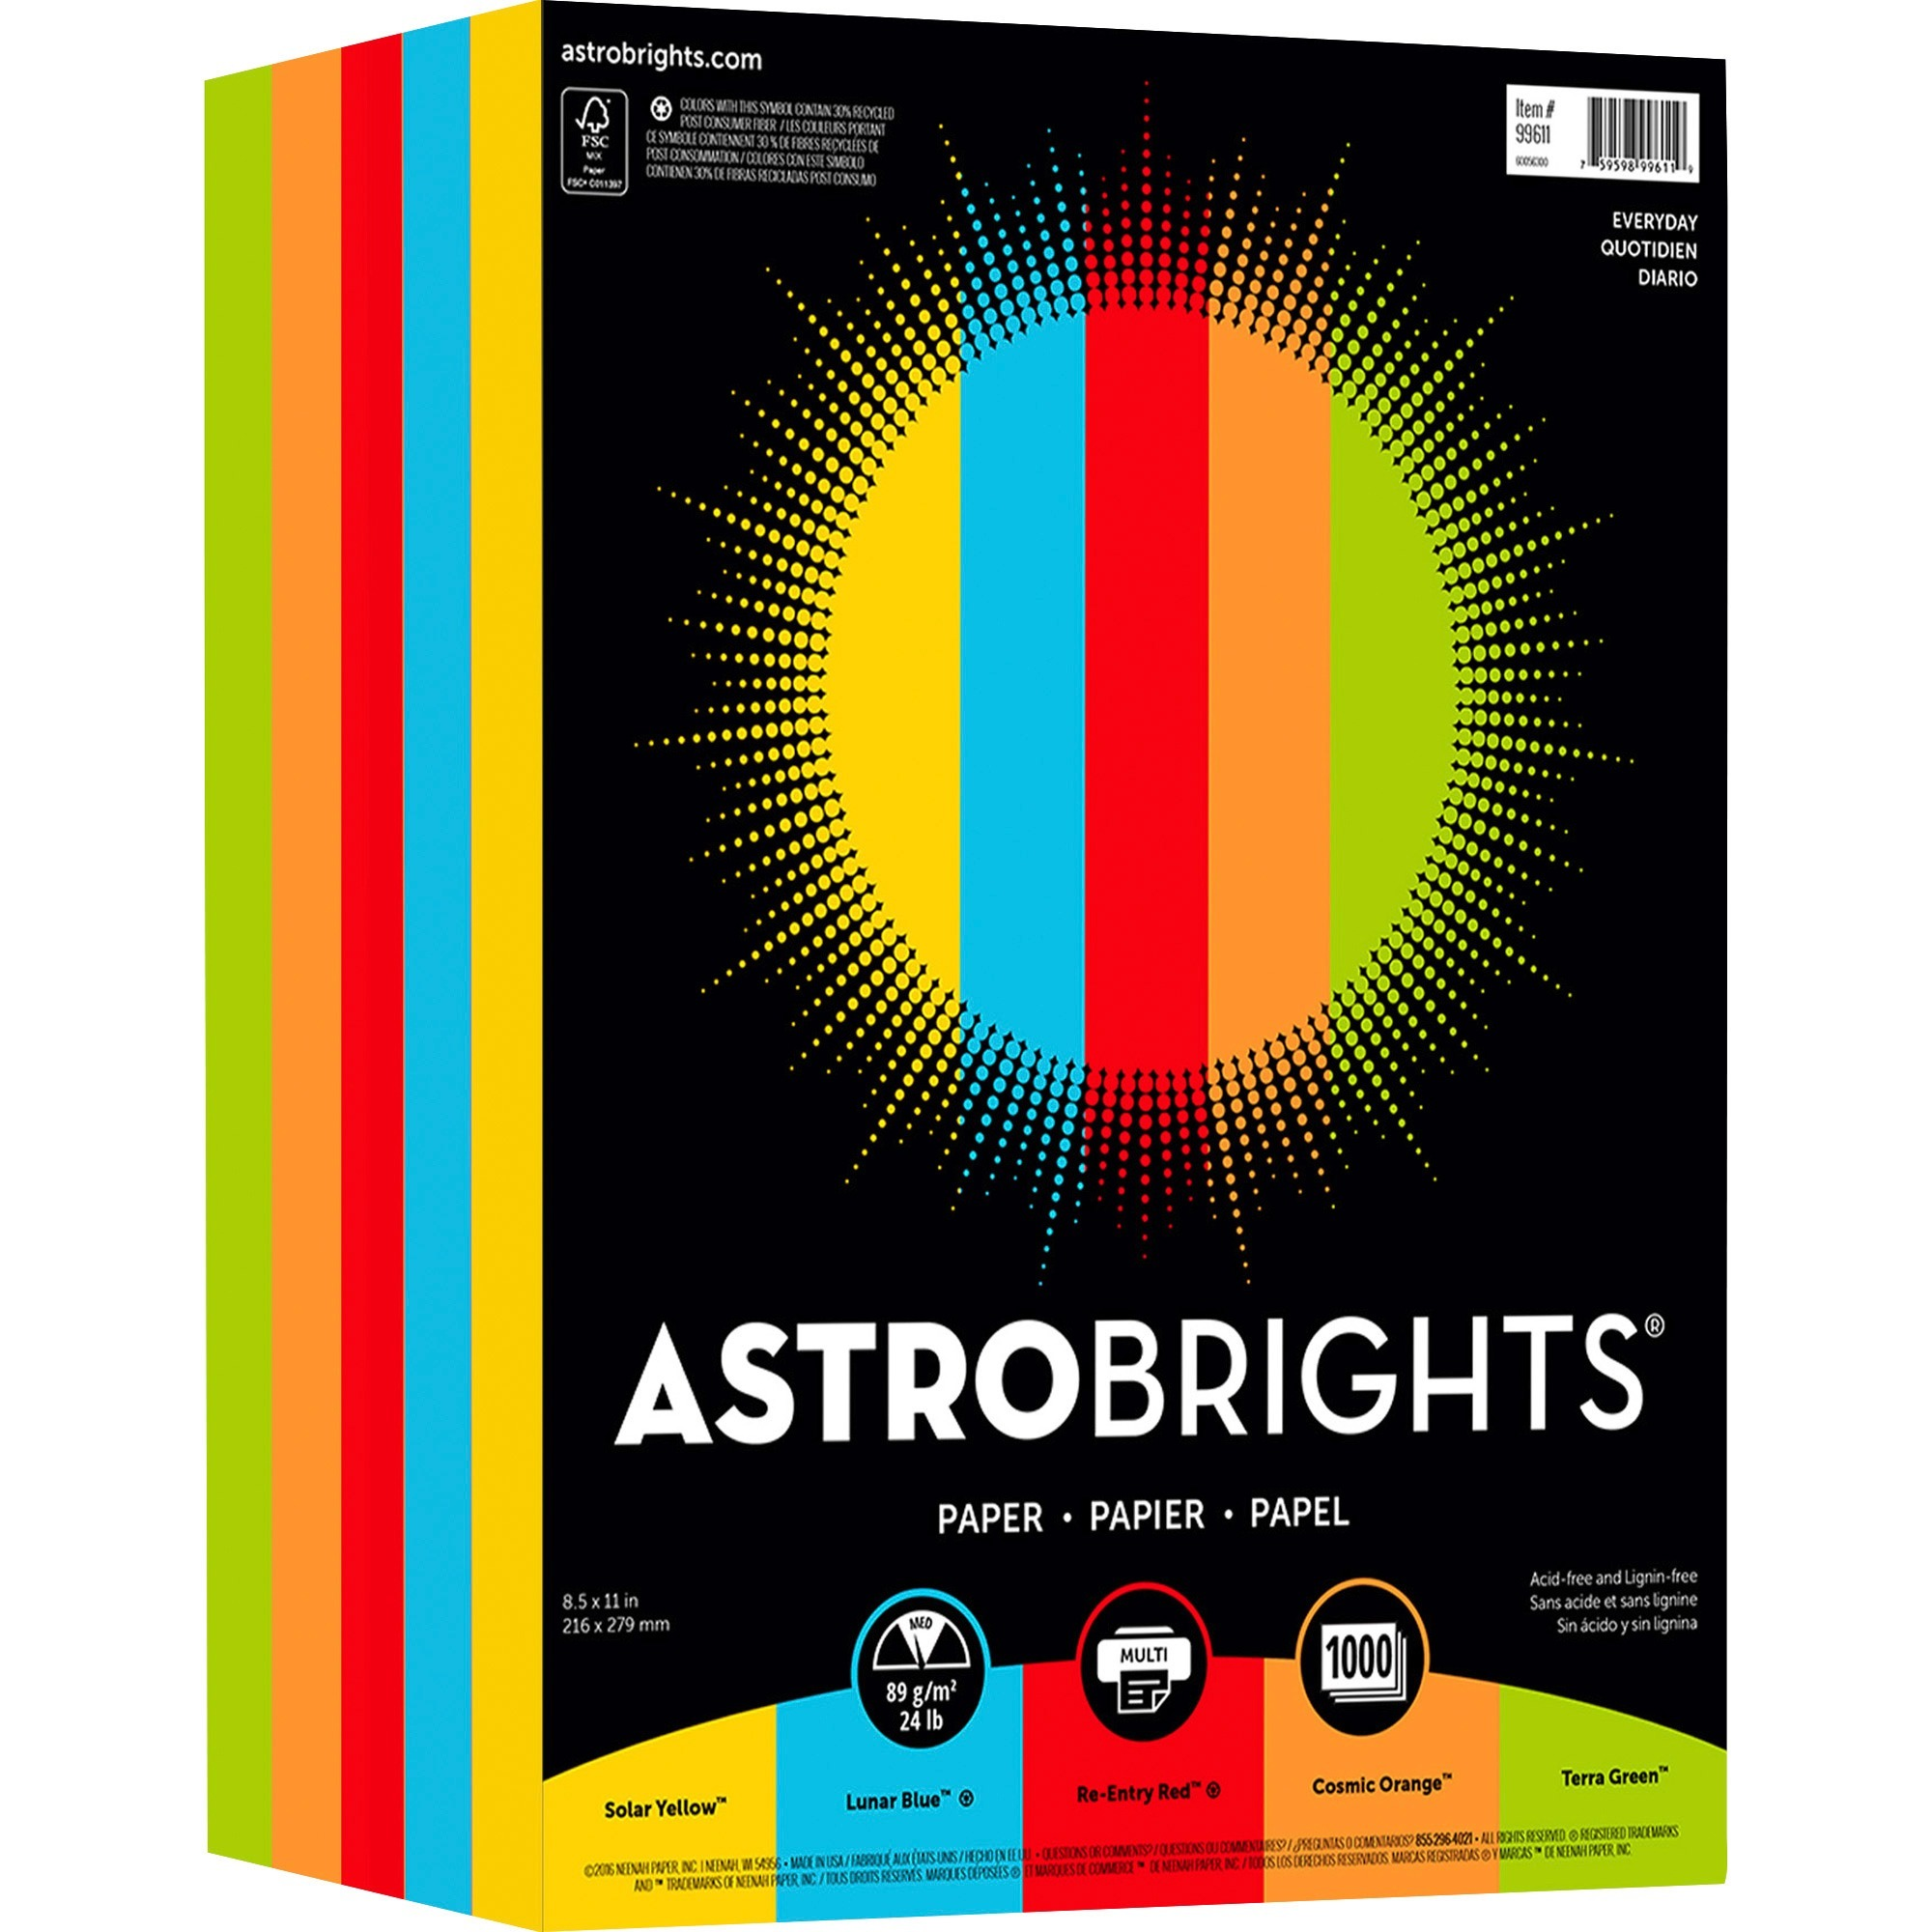 """Astrobrights, NEE99611, Color Paper - """"Everyday"""" 5-Color Assortment, 250 / Pack, Lunar Blue,Terra Green,Cosmic Orange,Re-entry Red,Solar Yellow"""